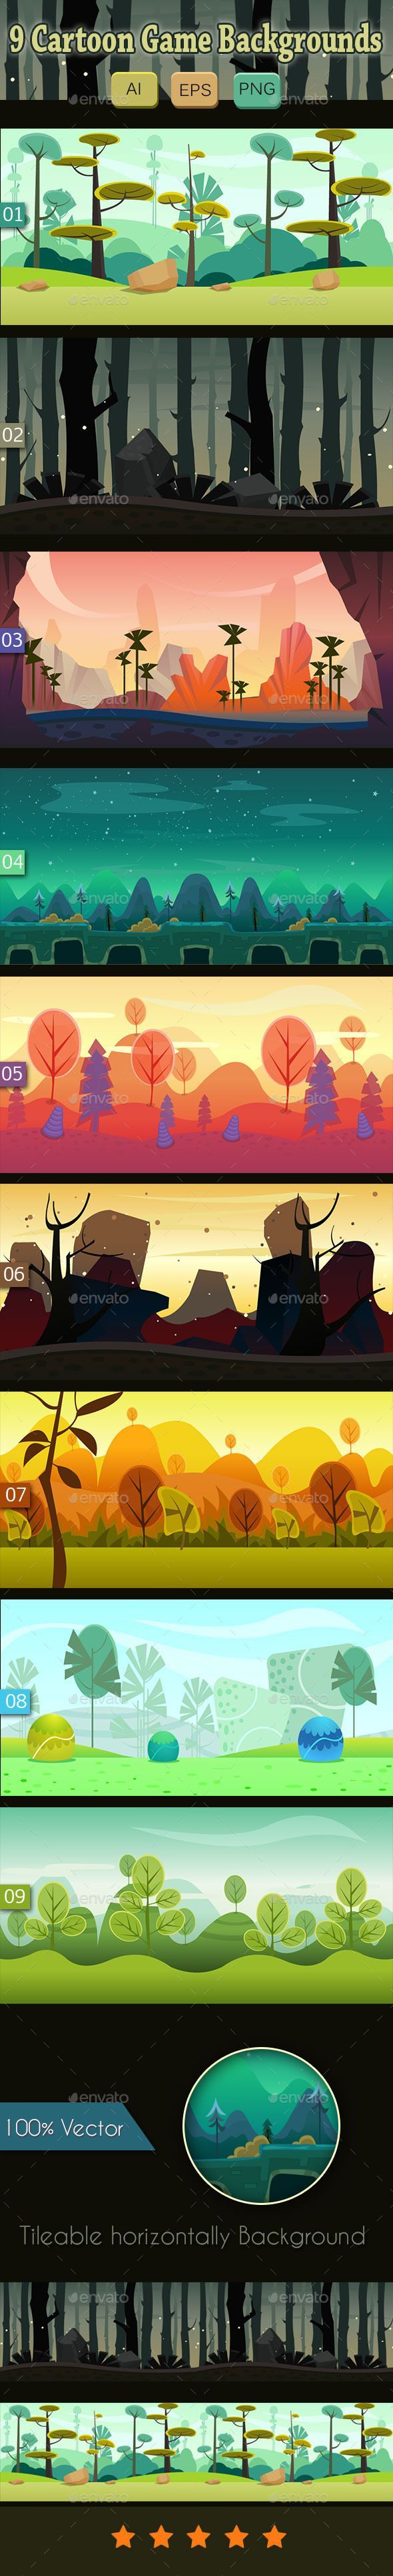 Buy 9 Cartoon Game Backgrounds By Canvaskite On GraphicRiver You Can Use This Background For Your Application Project It Suits Developers